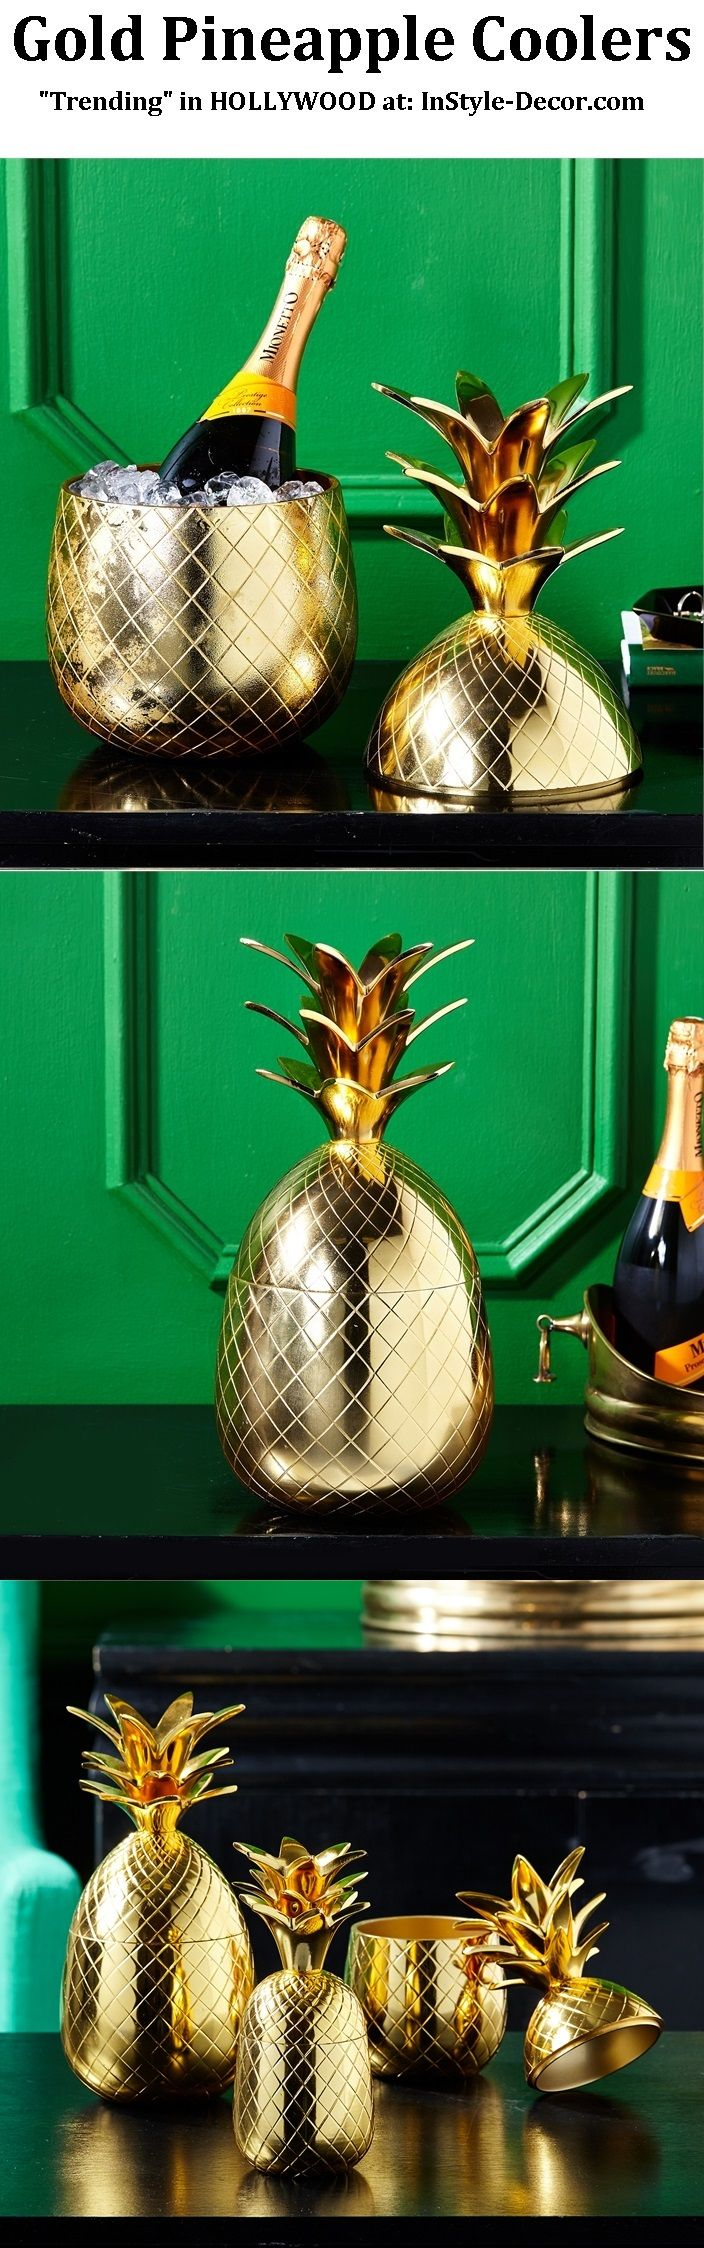 """""""Gold Pineapple"""" """"Gold Pineapples"""" """"Gold Pineapple Ice Bucket"""" Designs By www.InStyle-Decor... HOLLYWOOD Over 5,000 Inspirations Now Online, Luxury Furniture, Mirrors, Lighting, Chandeliers, Lamps, Decorative Accessories & Gifts. Professional Interior Design Solutions For Interior Architects, Interior Specifiers, Interior Designers, Interior Decorators, Hospitality, Commercial, Maritime & Residential. Beverly Hills New York London Barcelona Over 10 Years Worldwide Shipping Experience"""